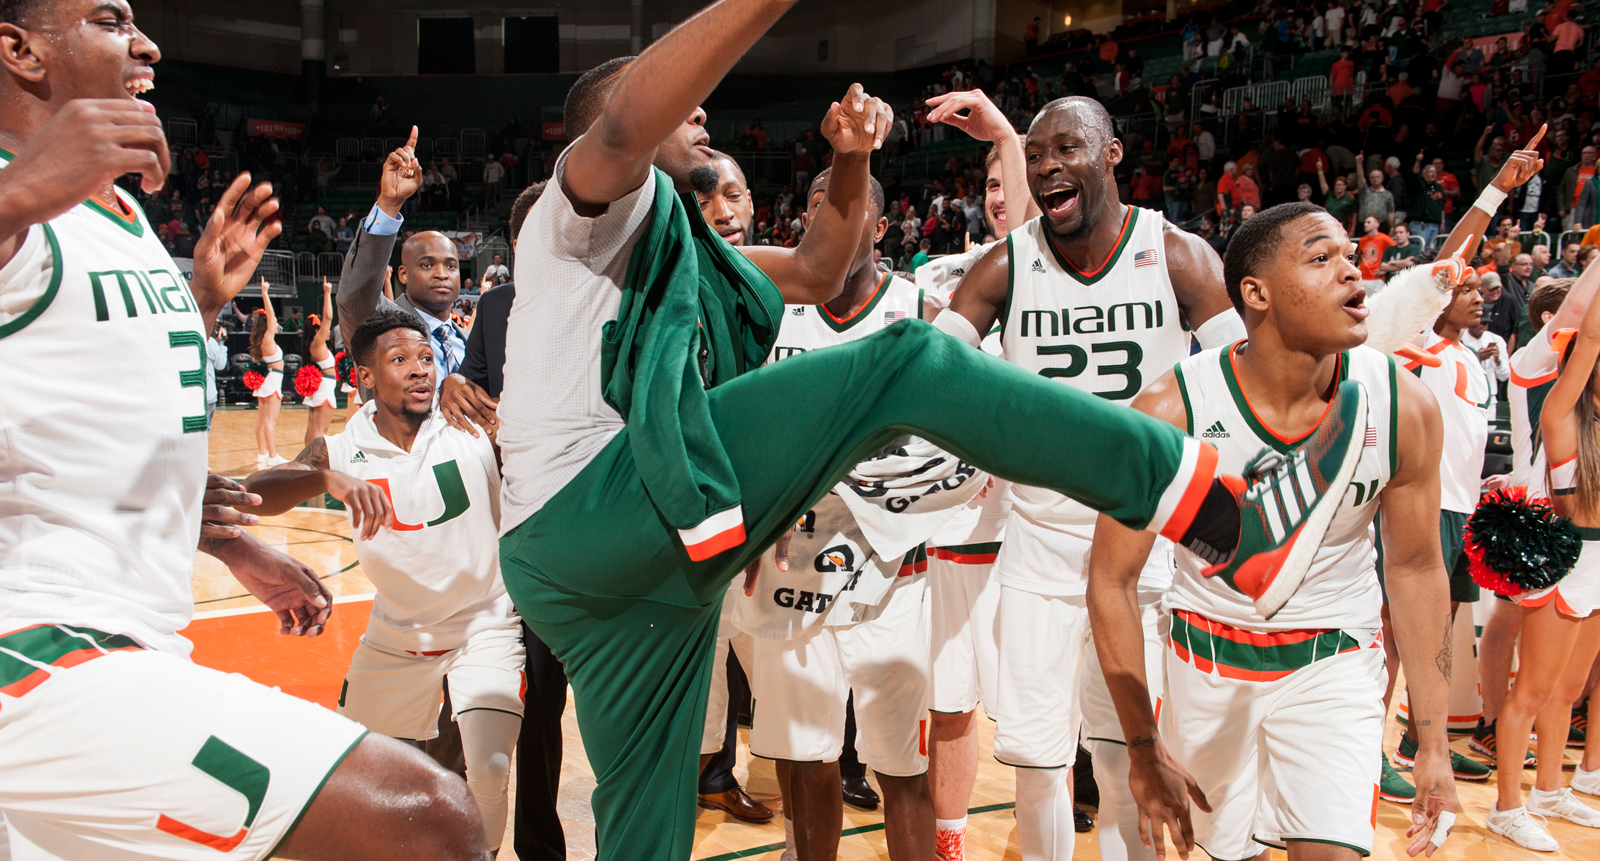 miami hurricanes basketball ncaa tournamnet march madness seeding selection show.